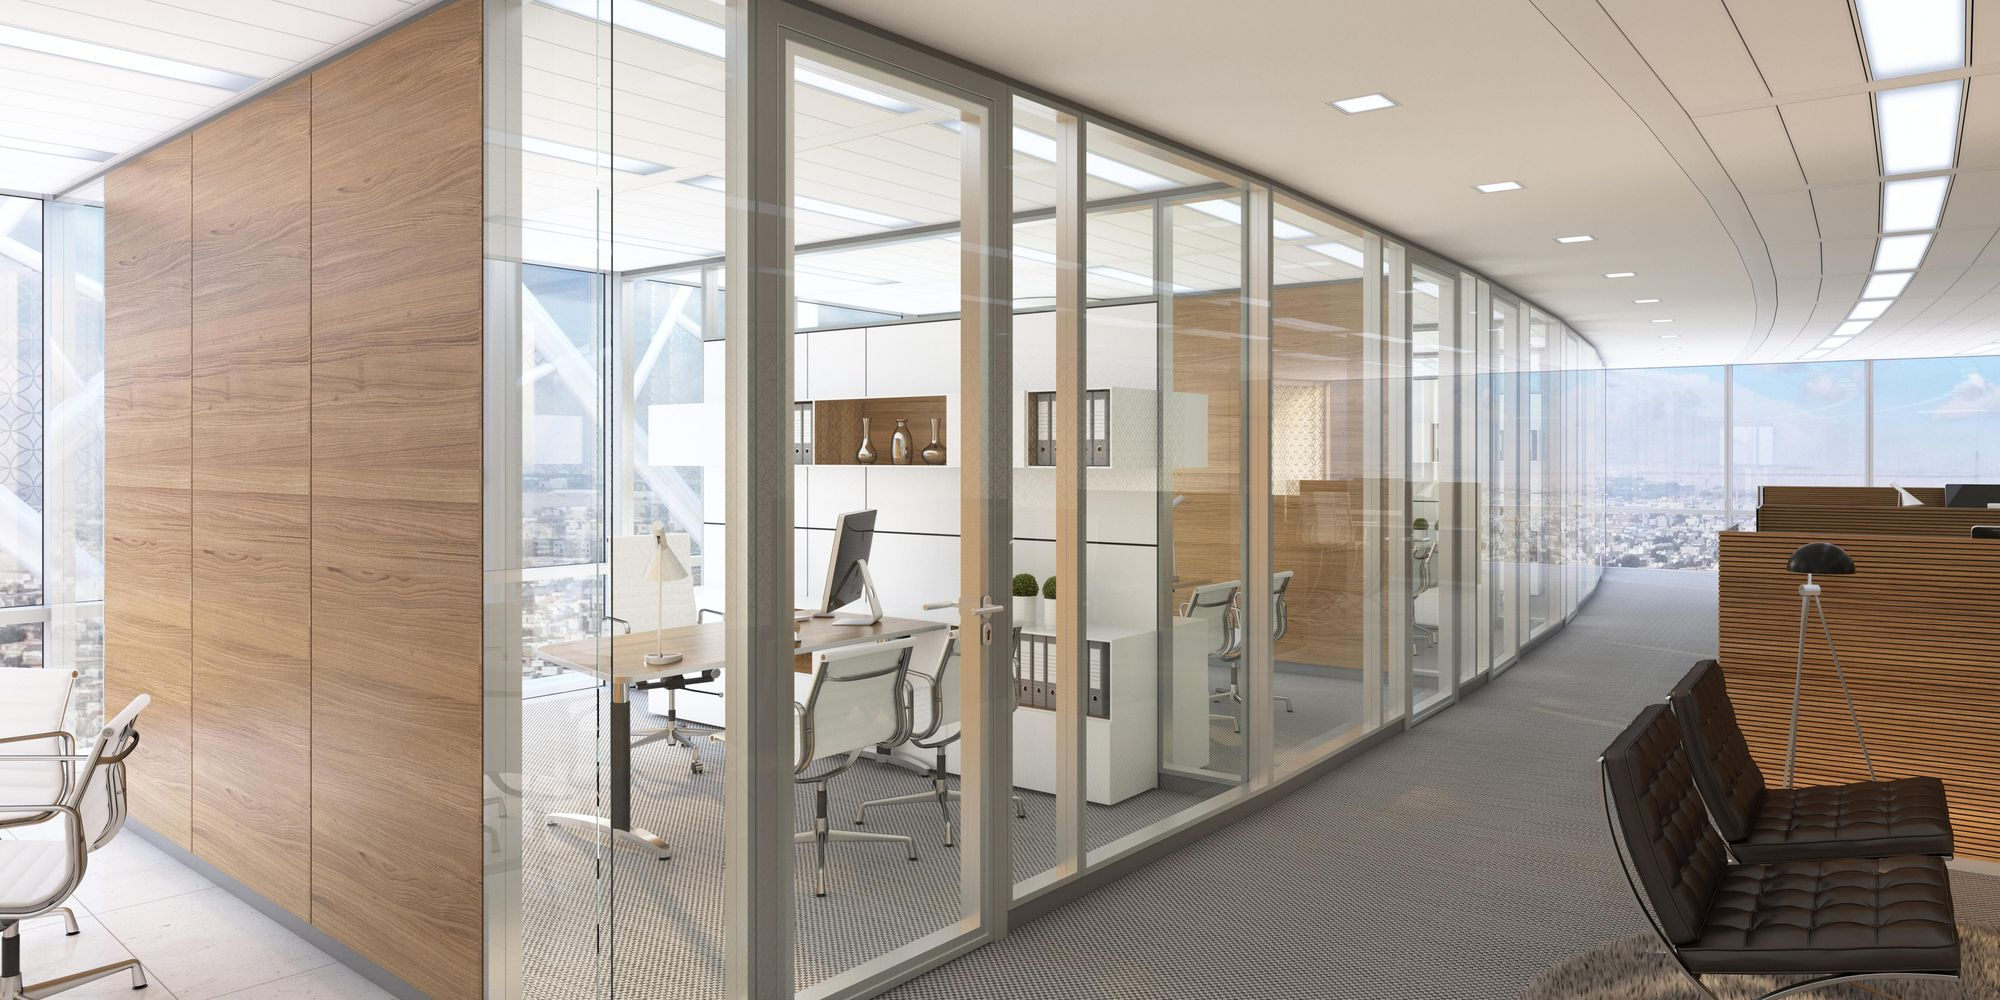 T65 double-glazed partition system with structural glazing